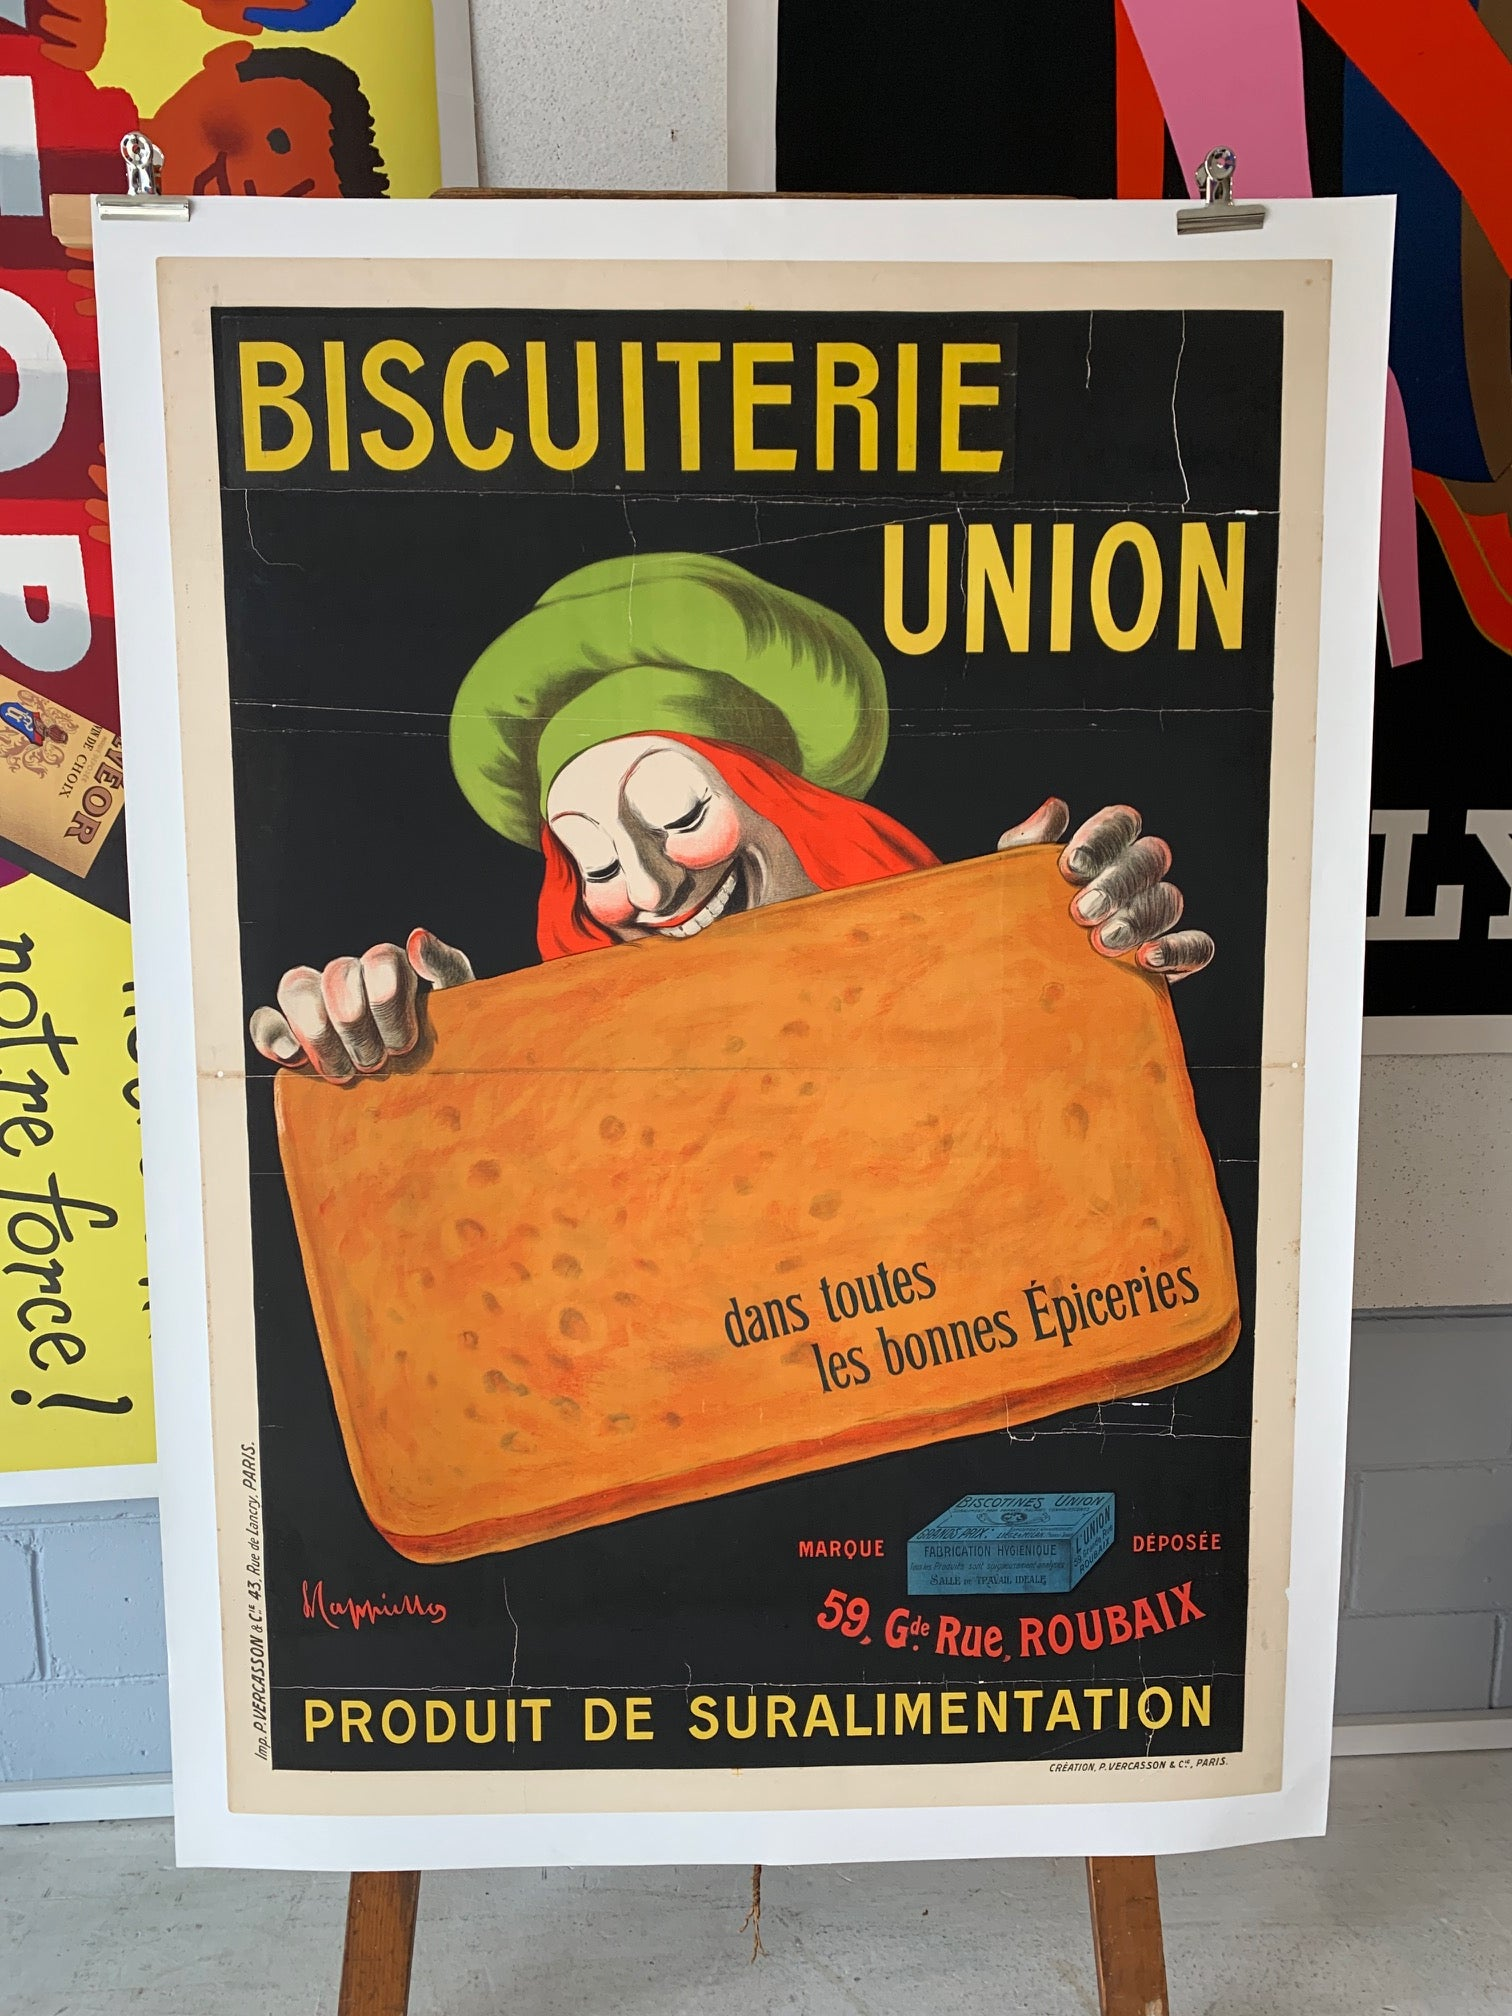 Biscuiterie Union by Cappiello